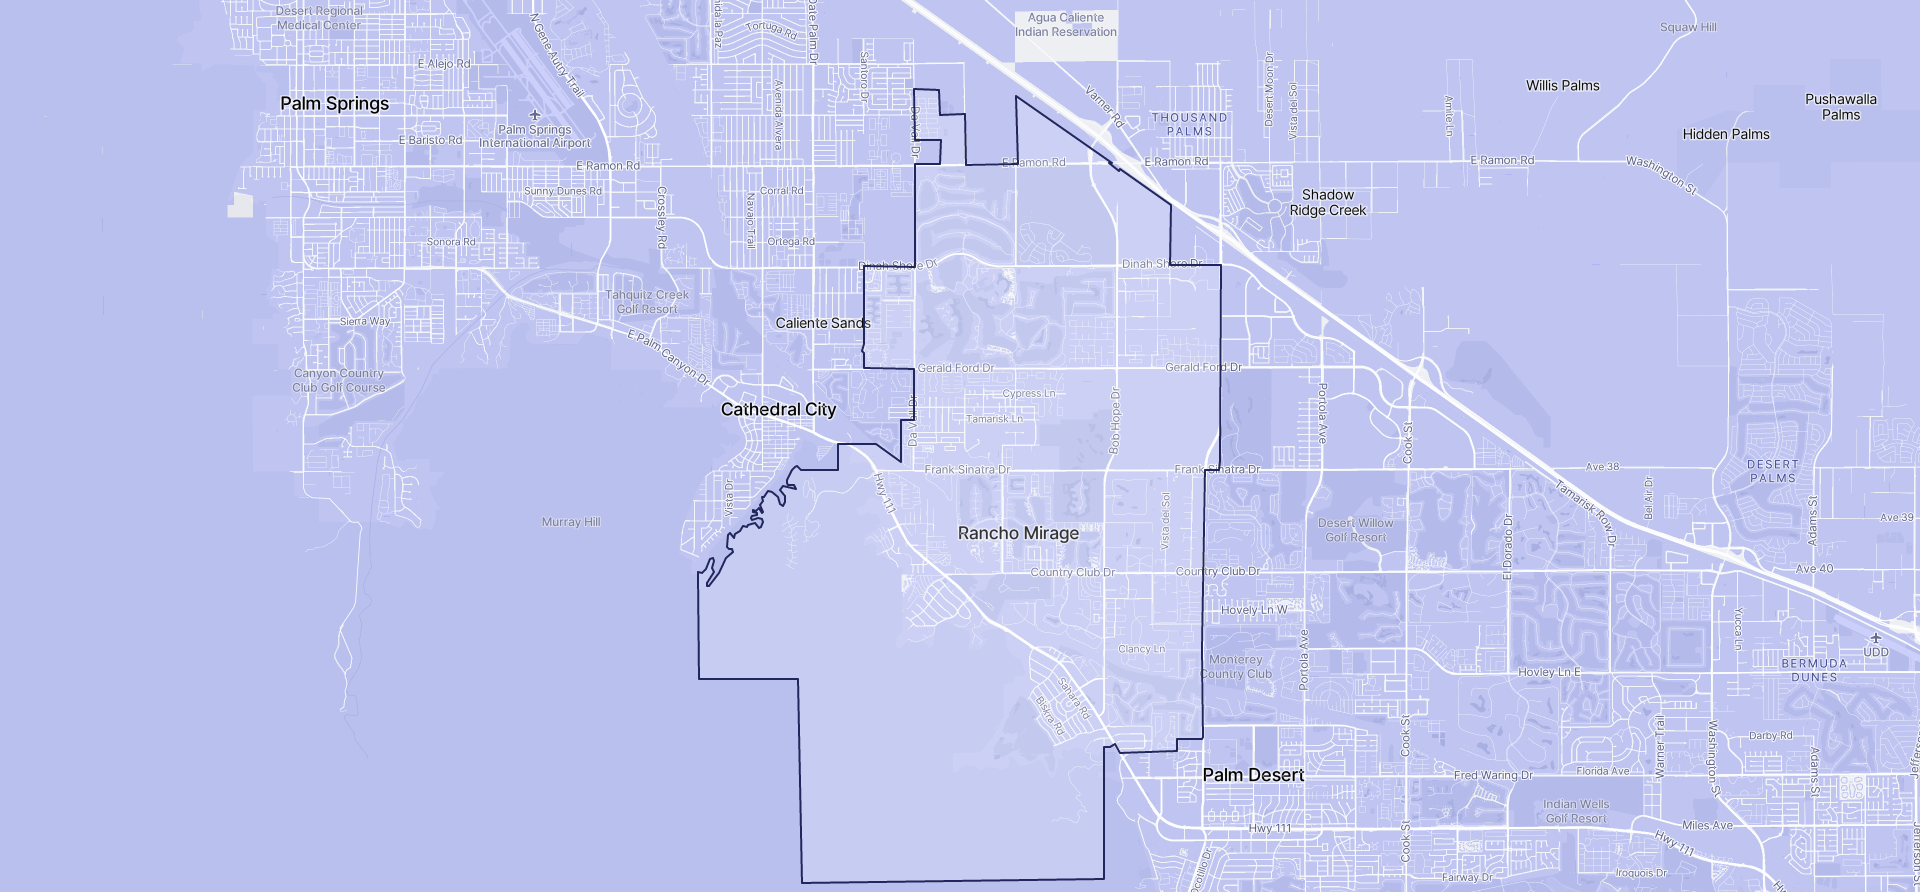 Image of Rancho Mirage boundaries on a map.